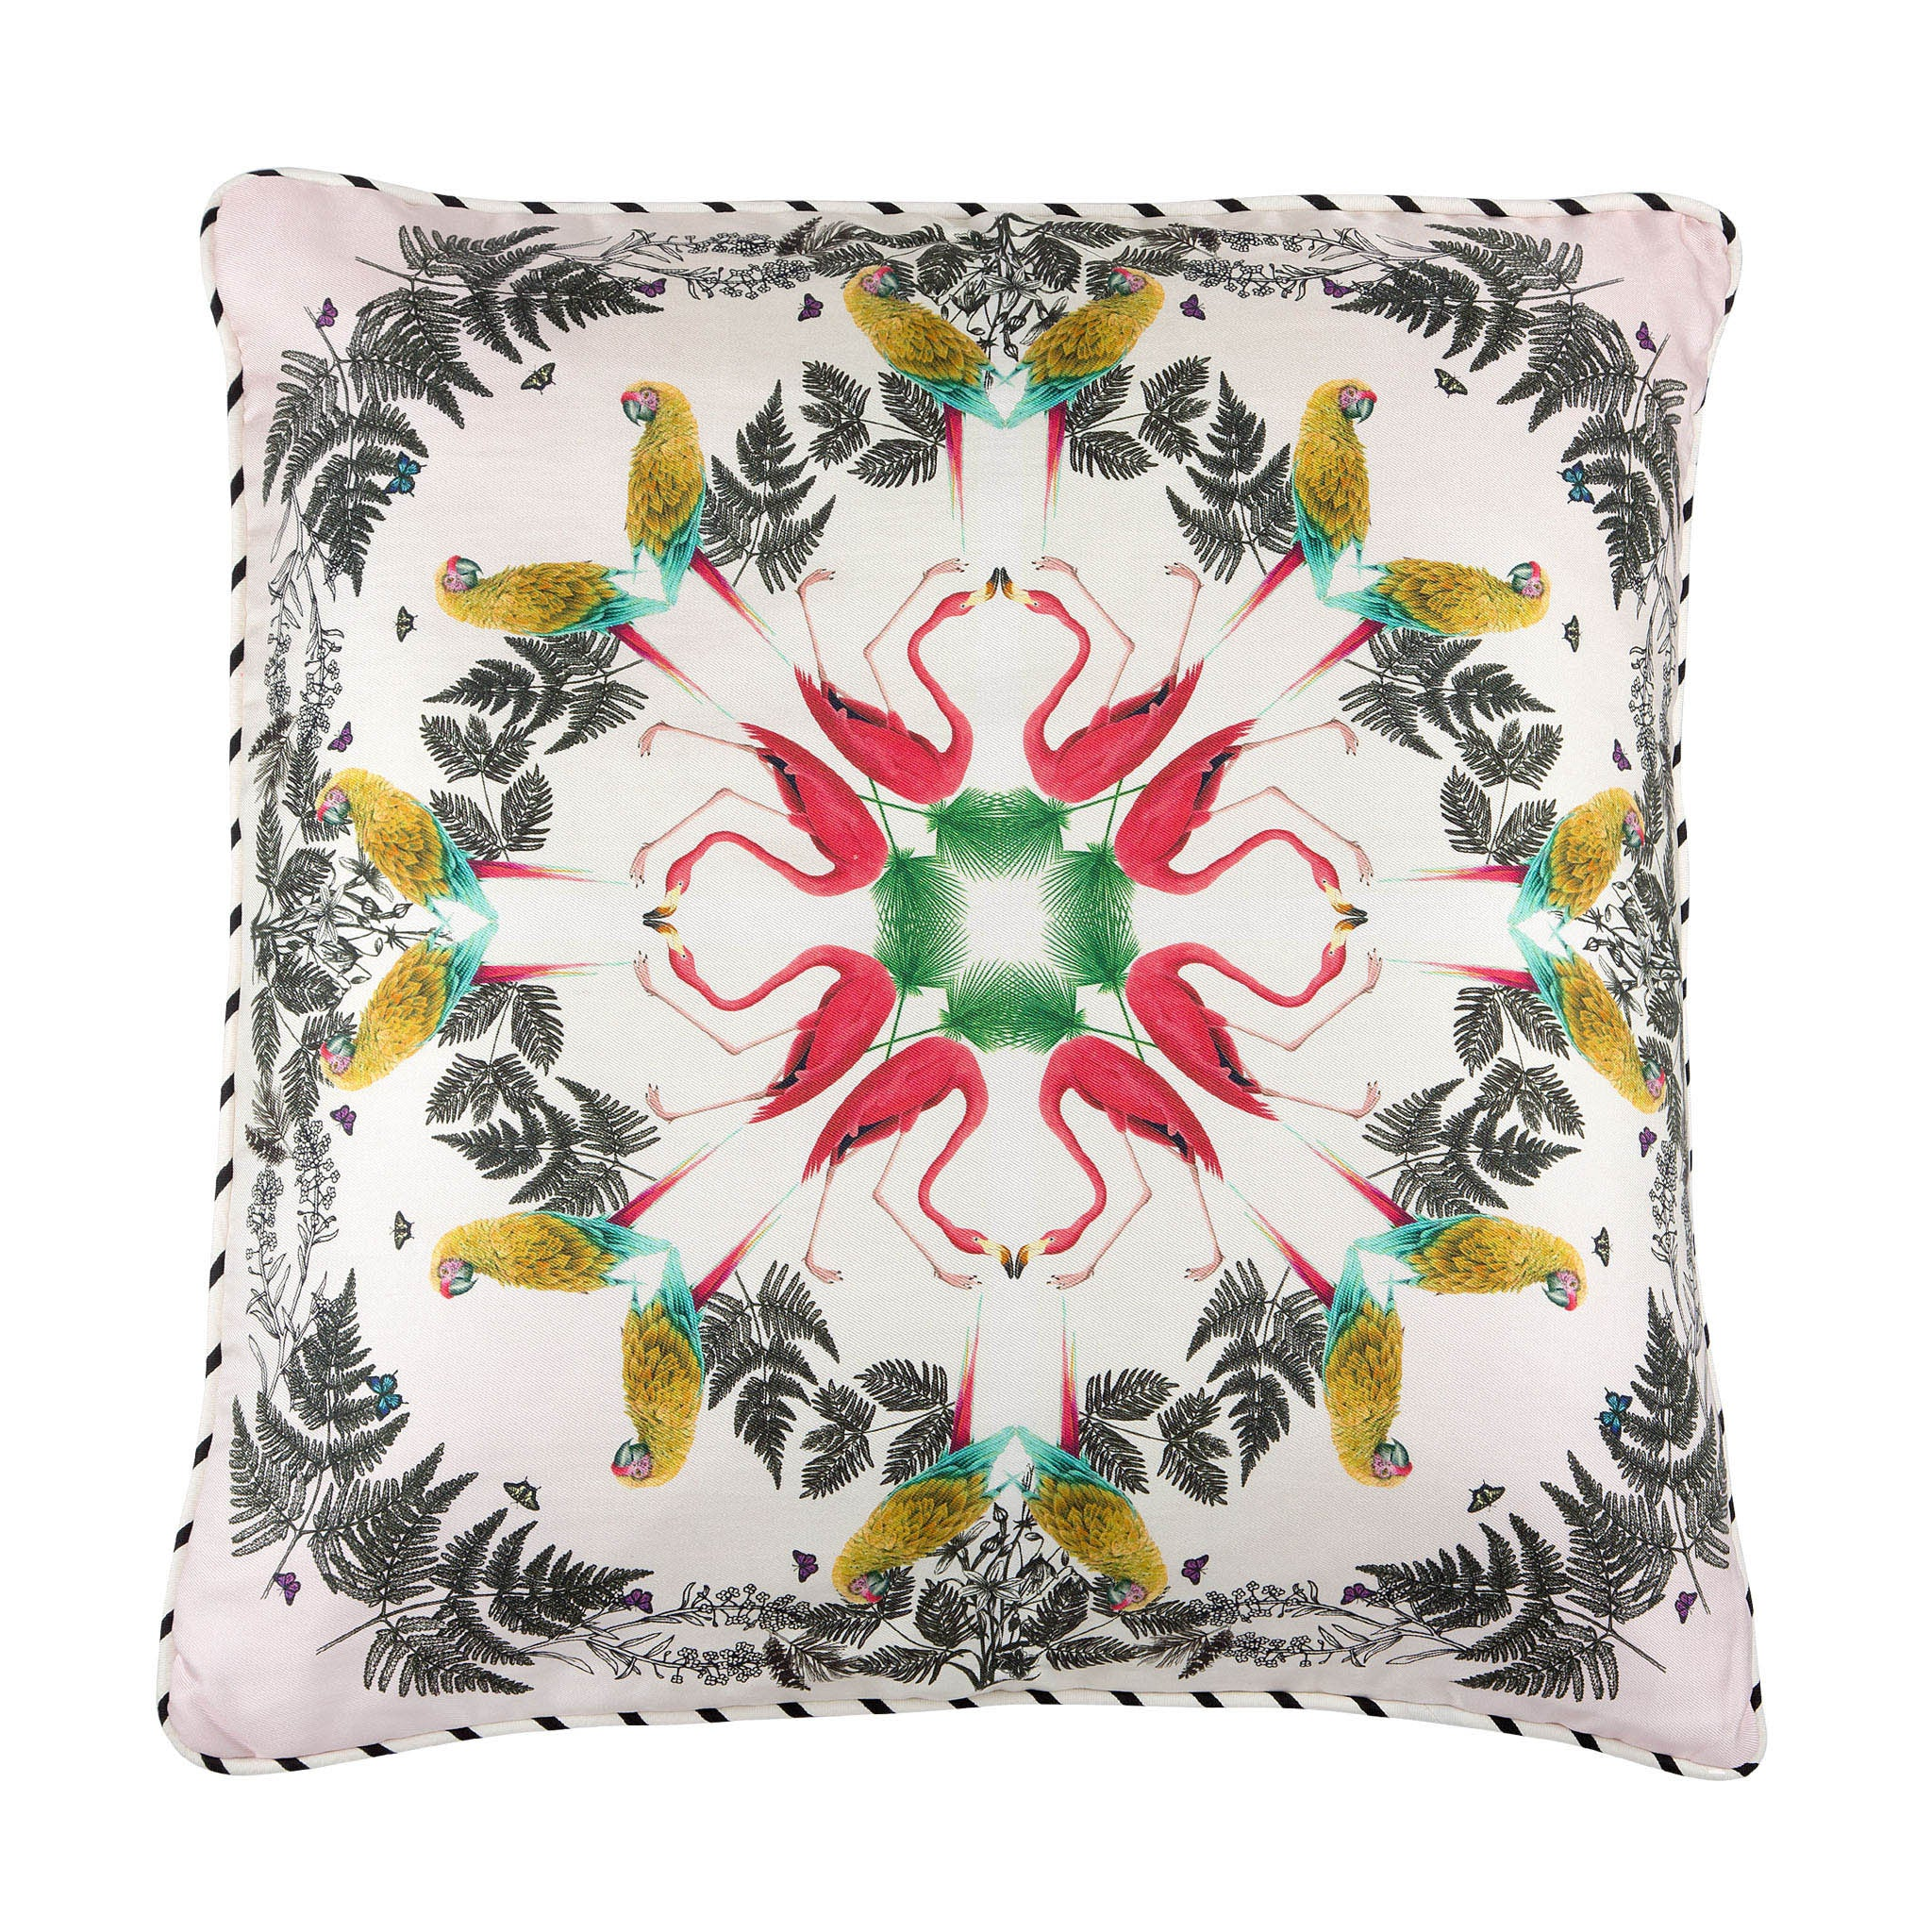 Silk twill and velvet tropical bird print cushion - Bivain - 1